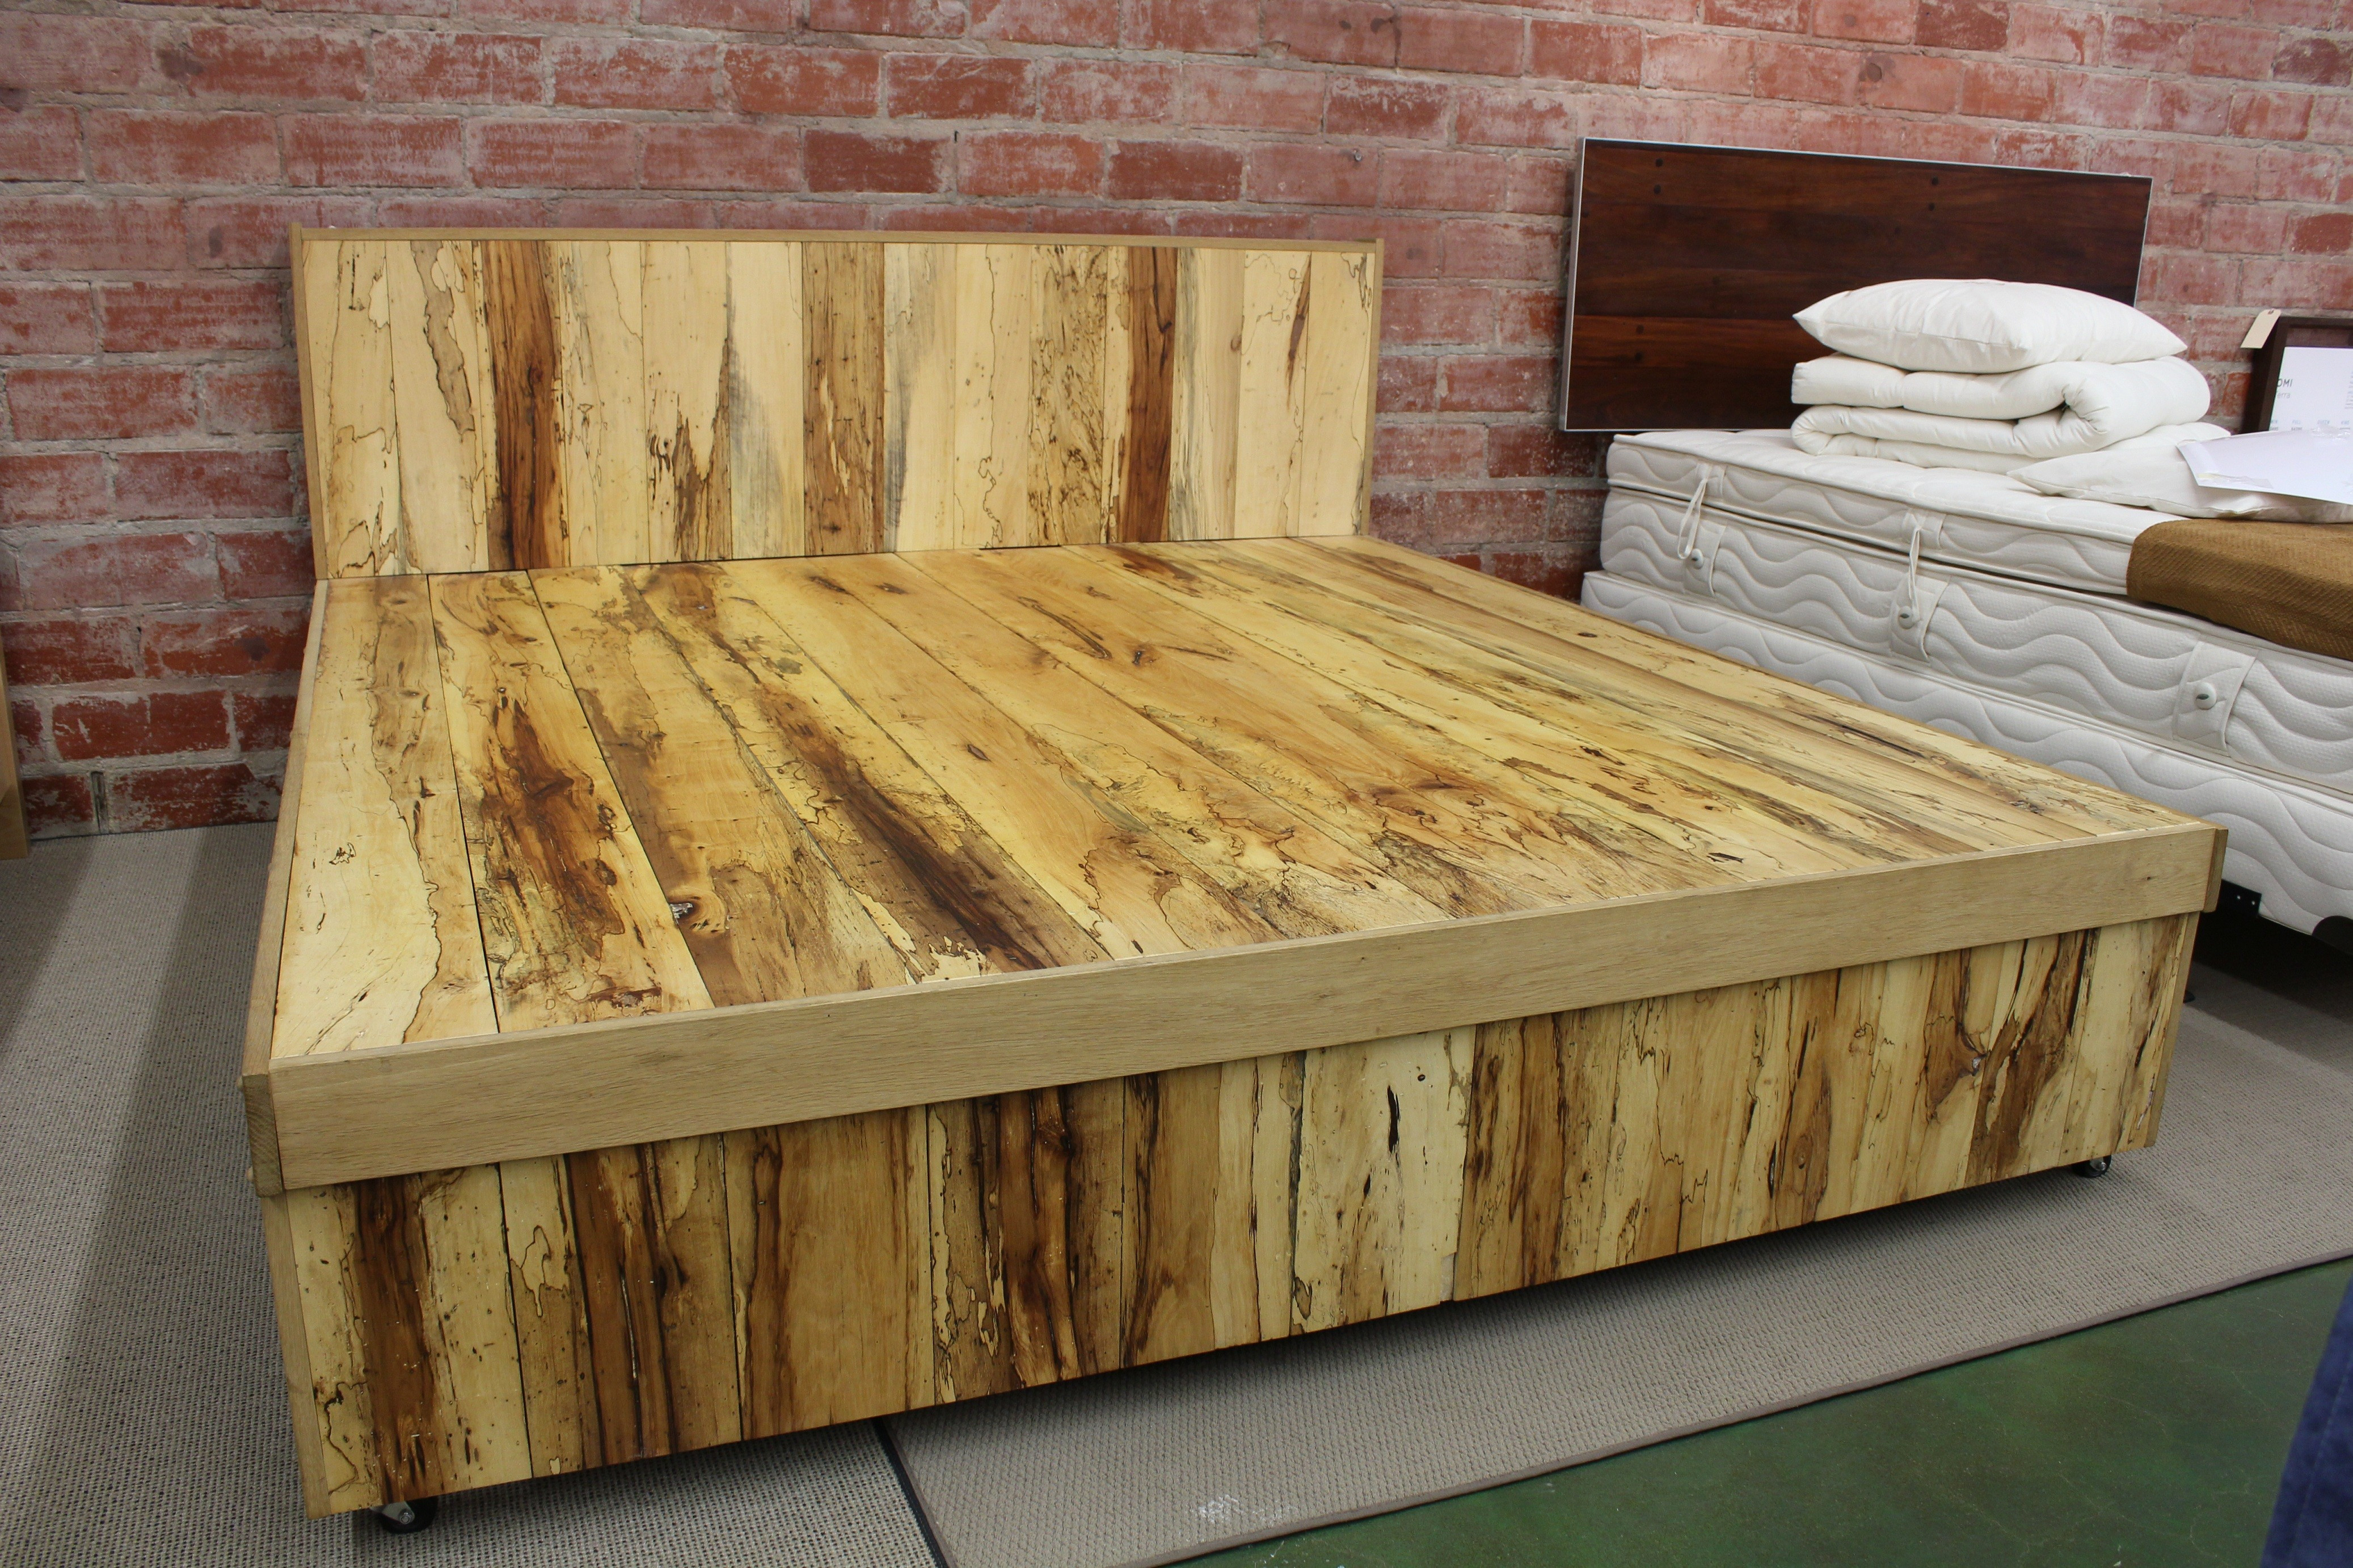 Best ideas about DIY King Size Bed Frame Plans . Save or Pin 20 King Size Bed Design To Beautify Your Couple s Bedroom Now.